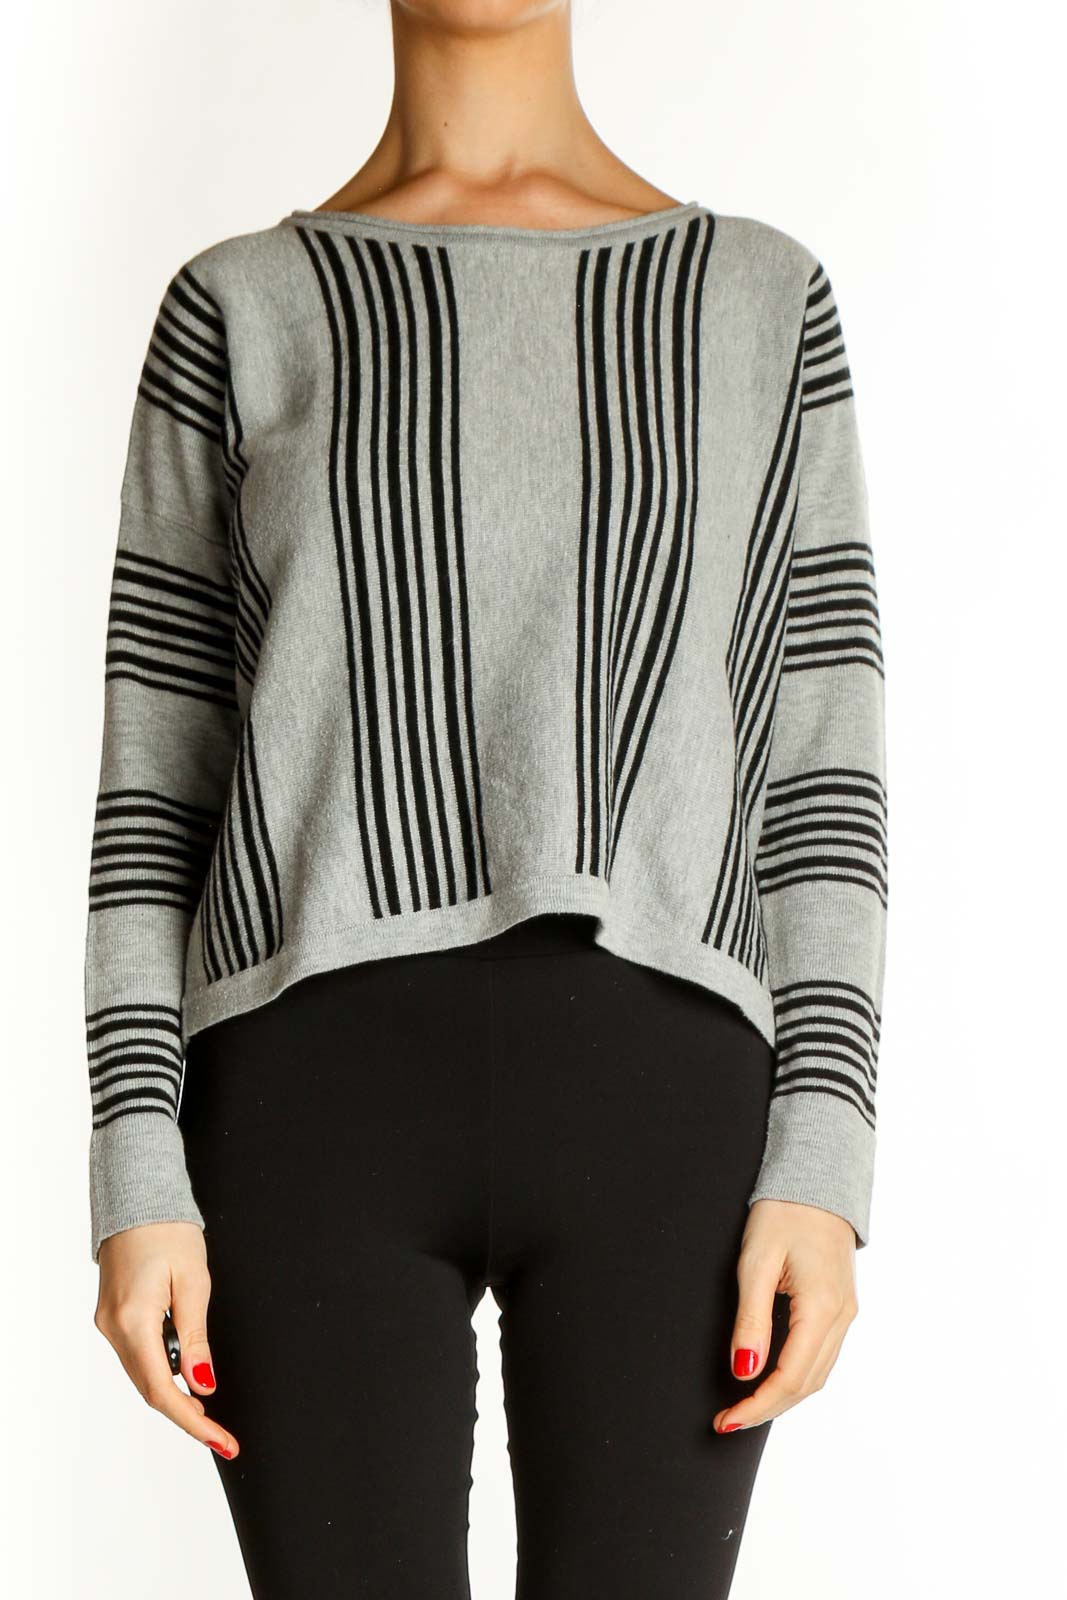 Gray Striped All Day Wear Sweater Front